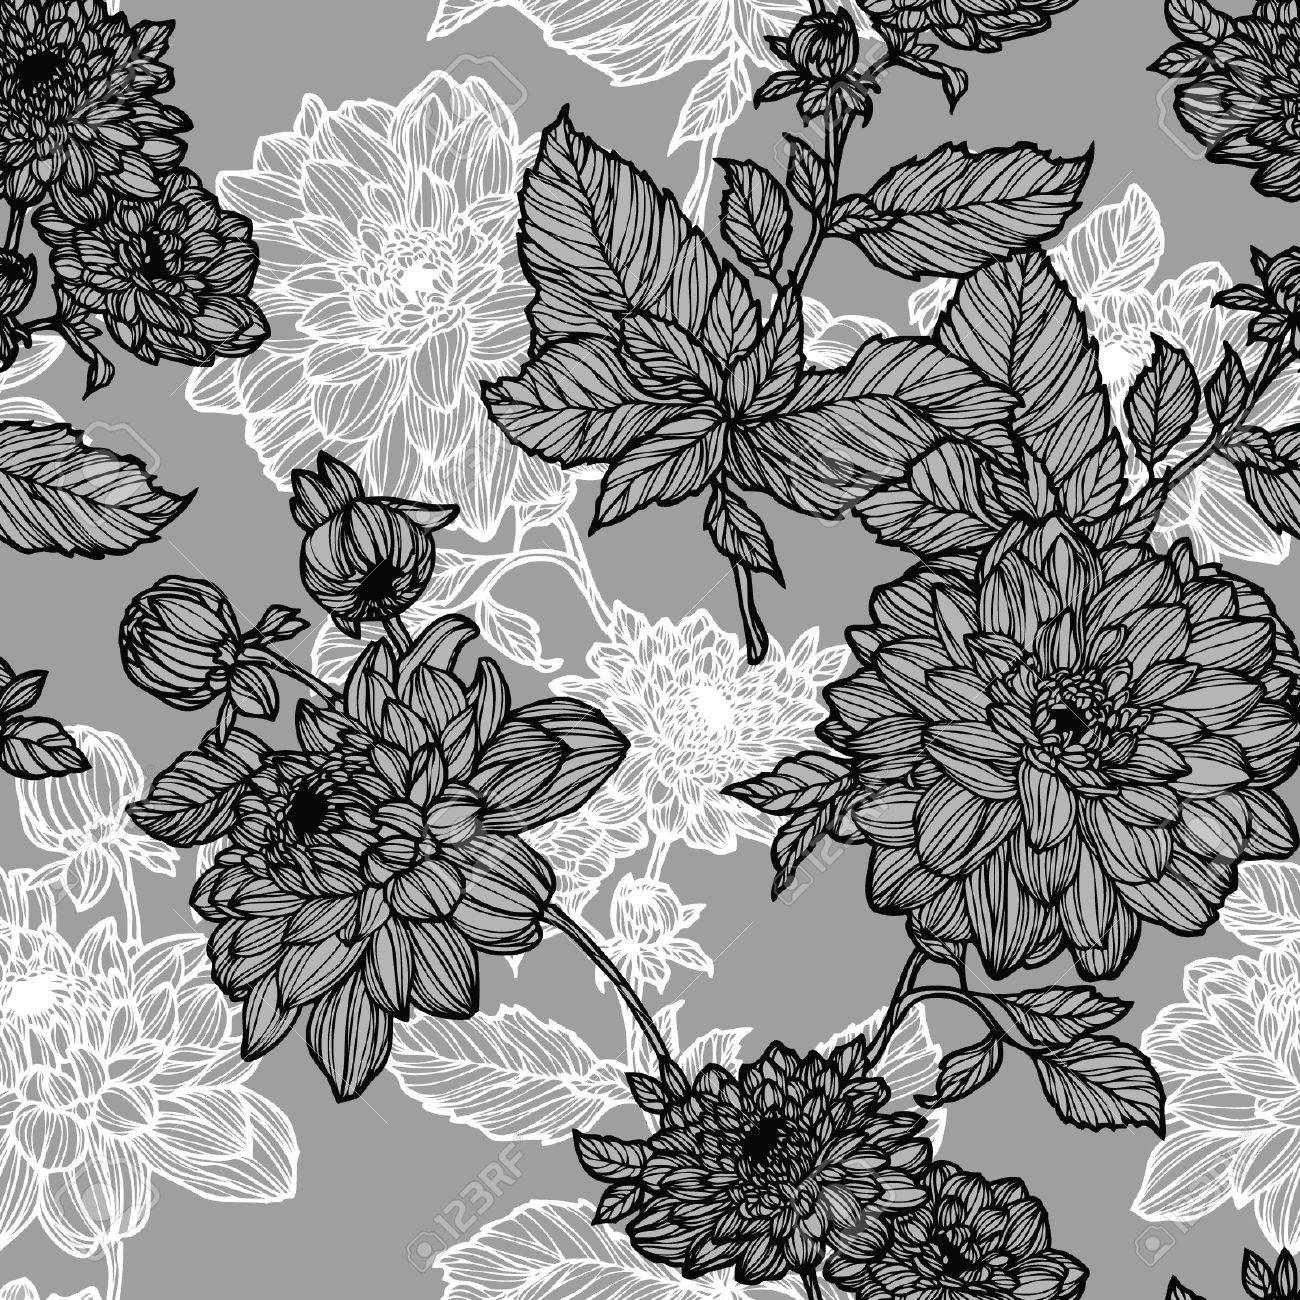 Elegance Seamless pattern with flowers, vector floral illustration in vintage style Stock Vector - 24930301